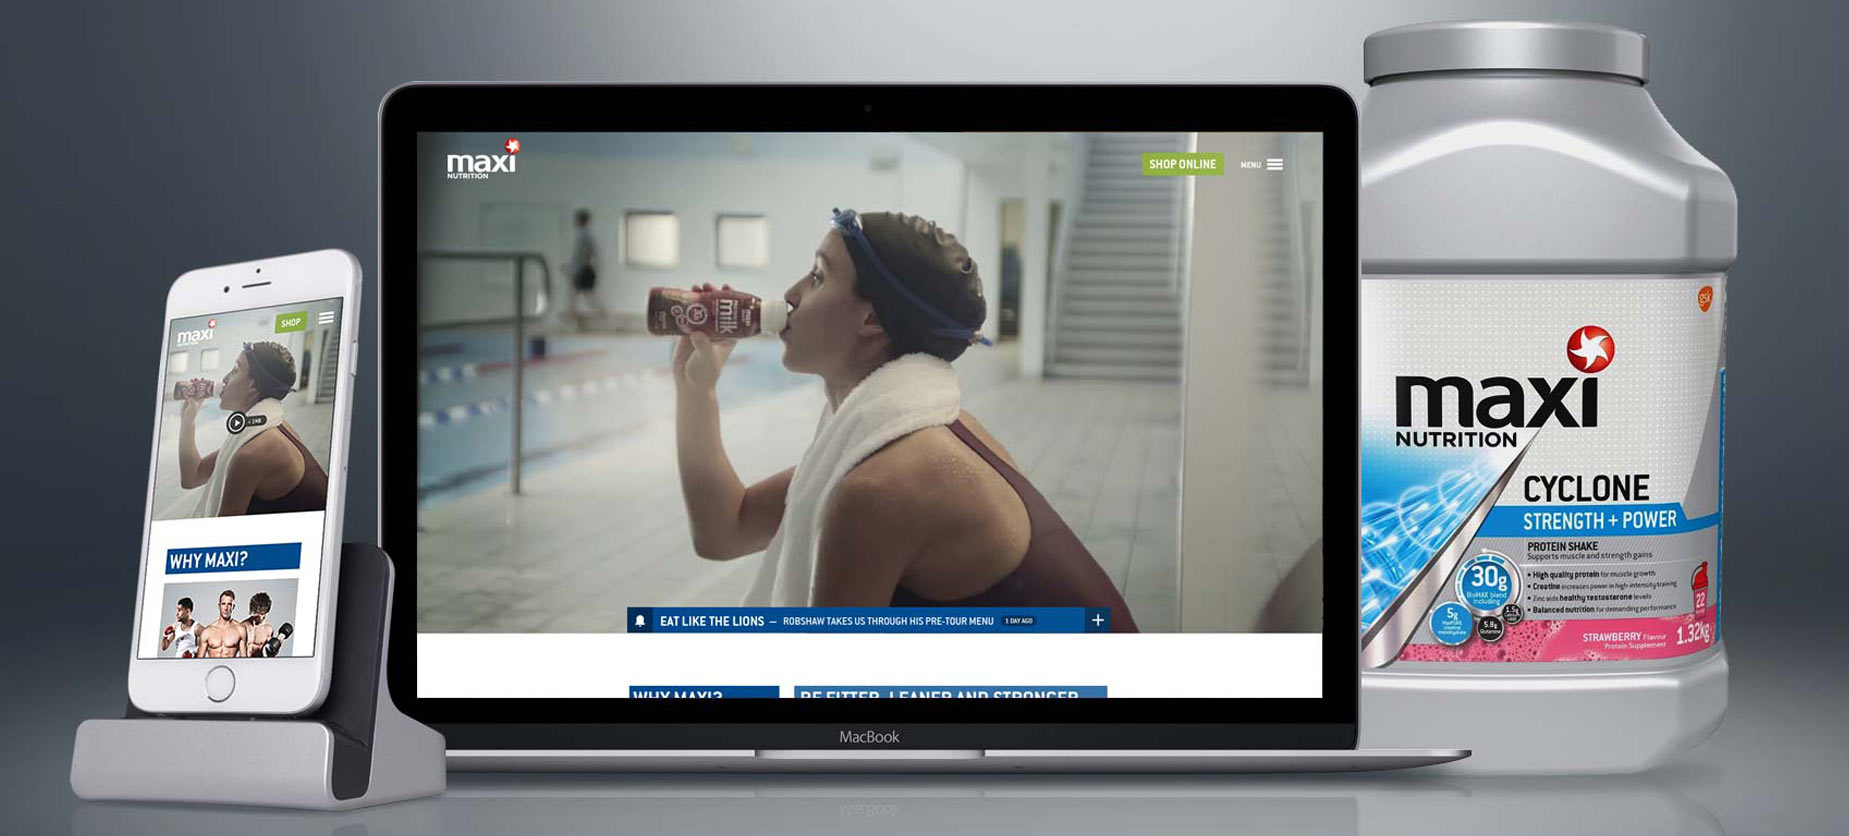 MaxiNutrition website on MacBook and iPhone next to product